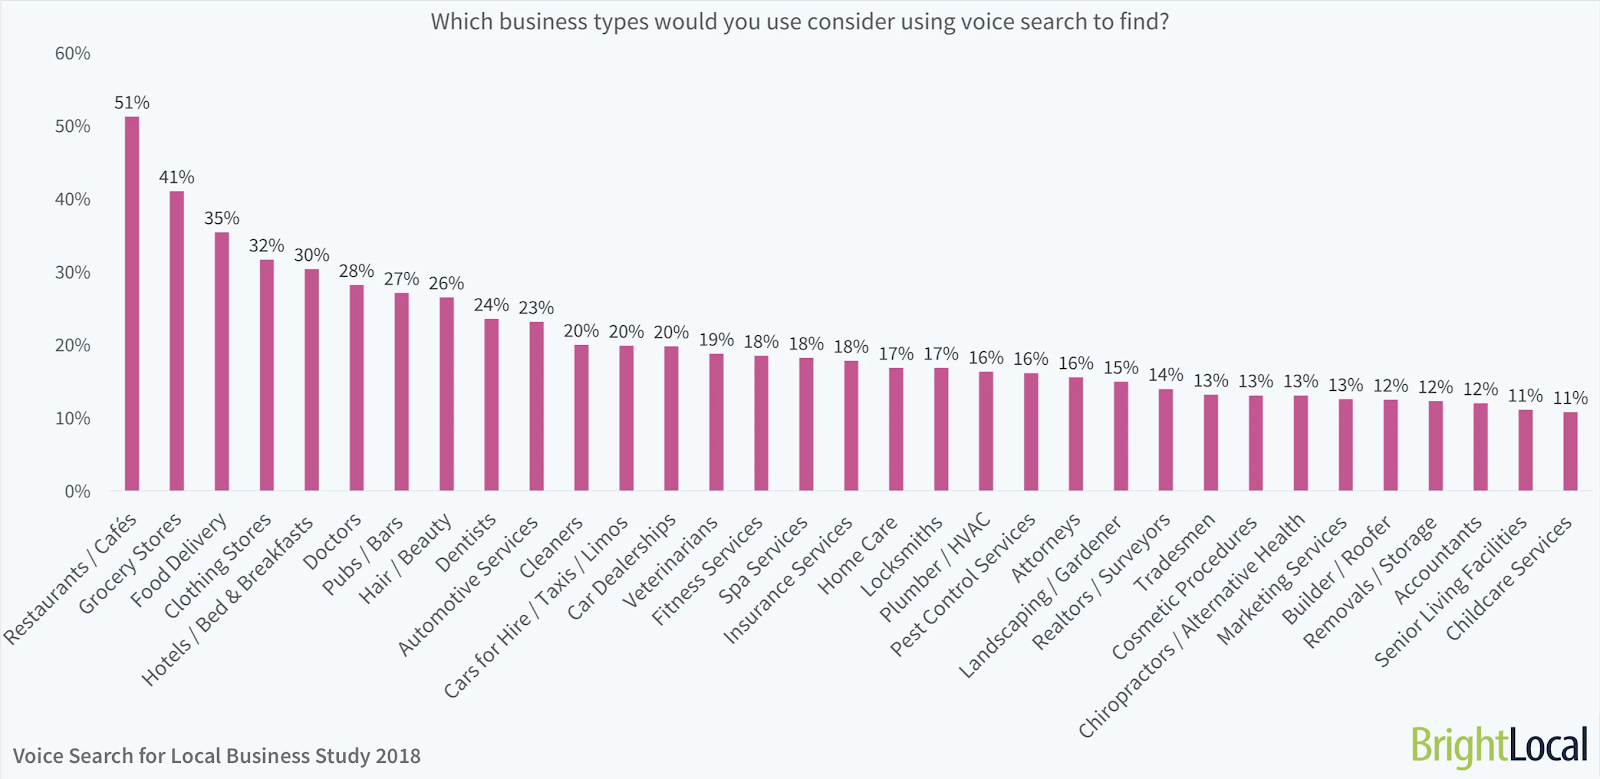 Which business types would you use consider using voice search to find?